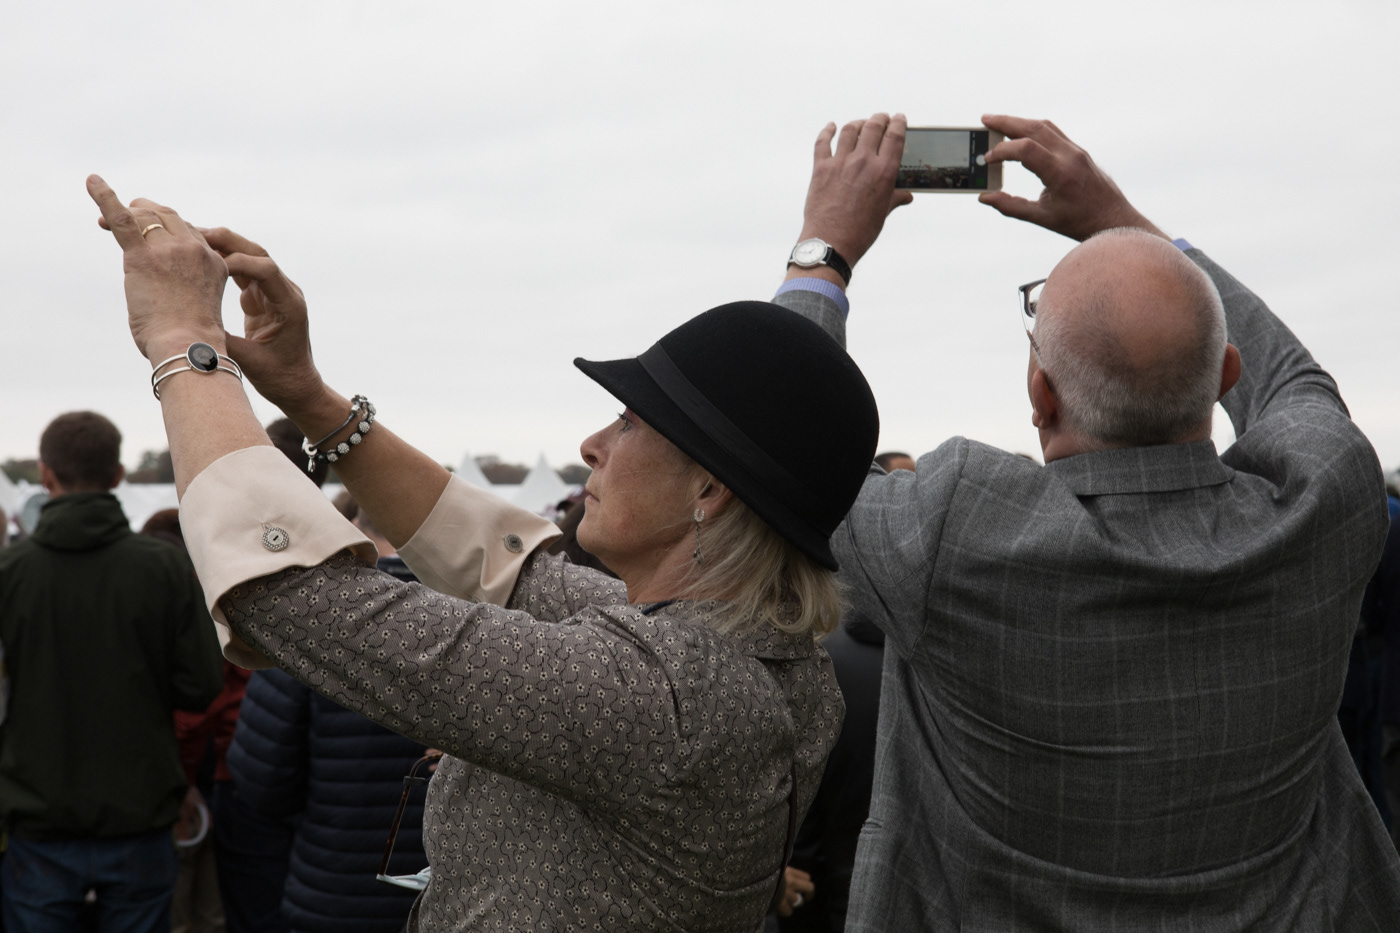 horse Racing hippodrome leisure time betting culture people Style Paris Photography